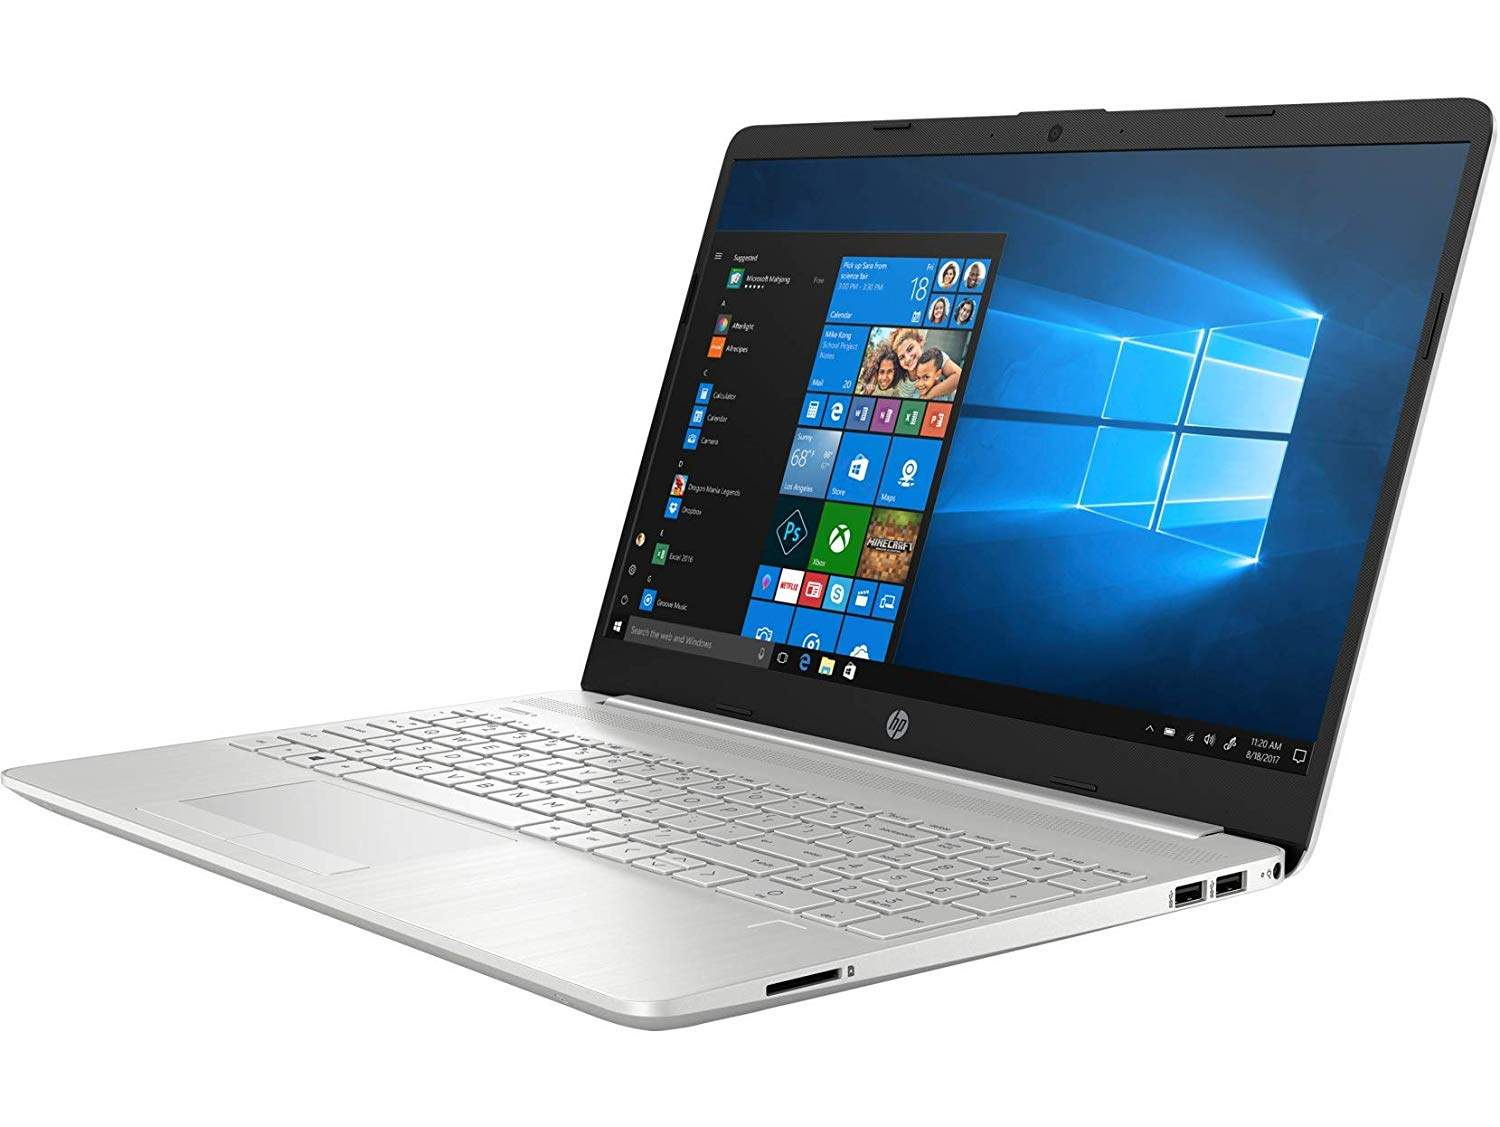 HP 15s-du00096tu 15.6- Laptop (8th Gen I5-8265U/8GB/1TB HDD + 256GB SSD/Windows 10 Home/2.04 Kg), (Natural Silver)